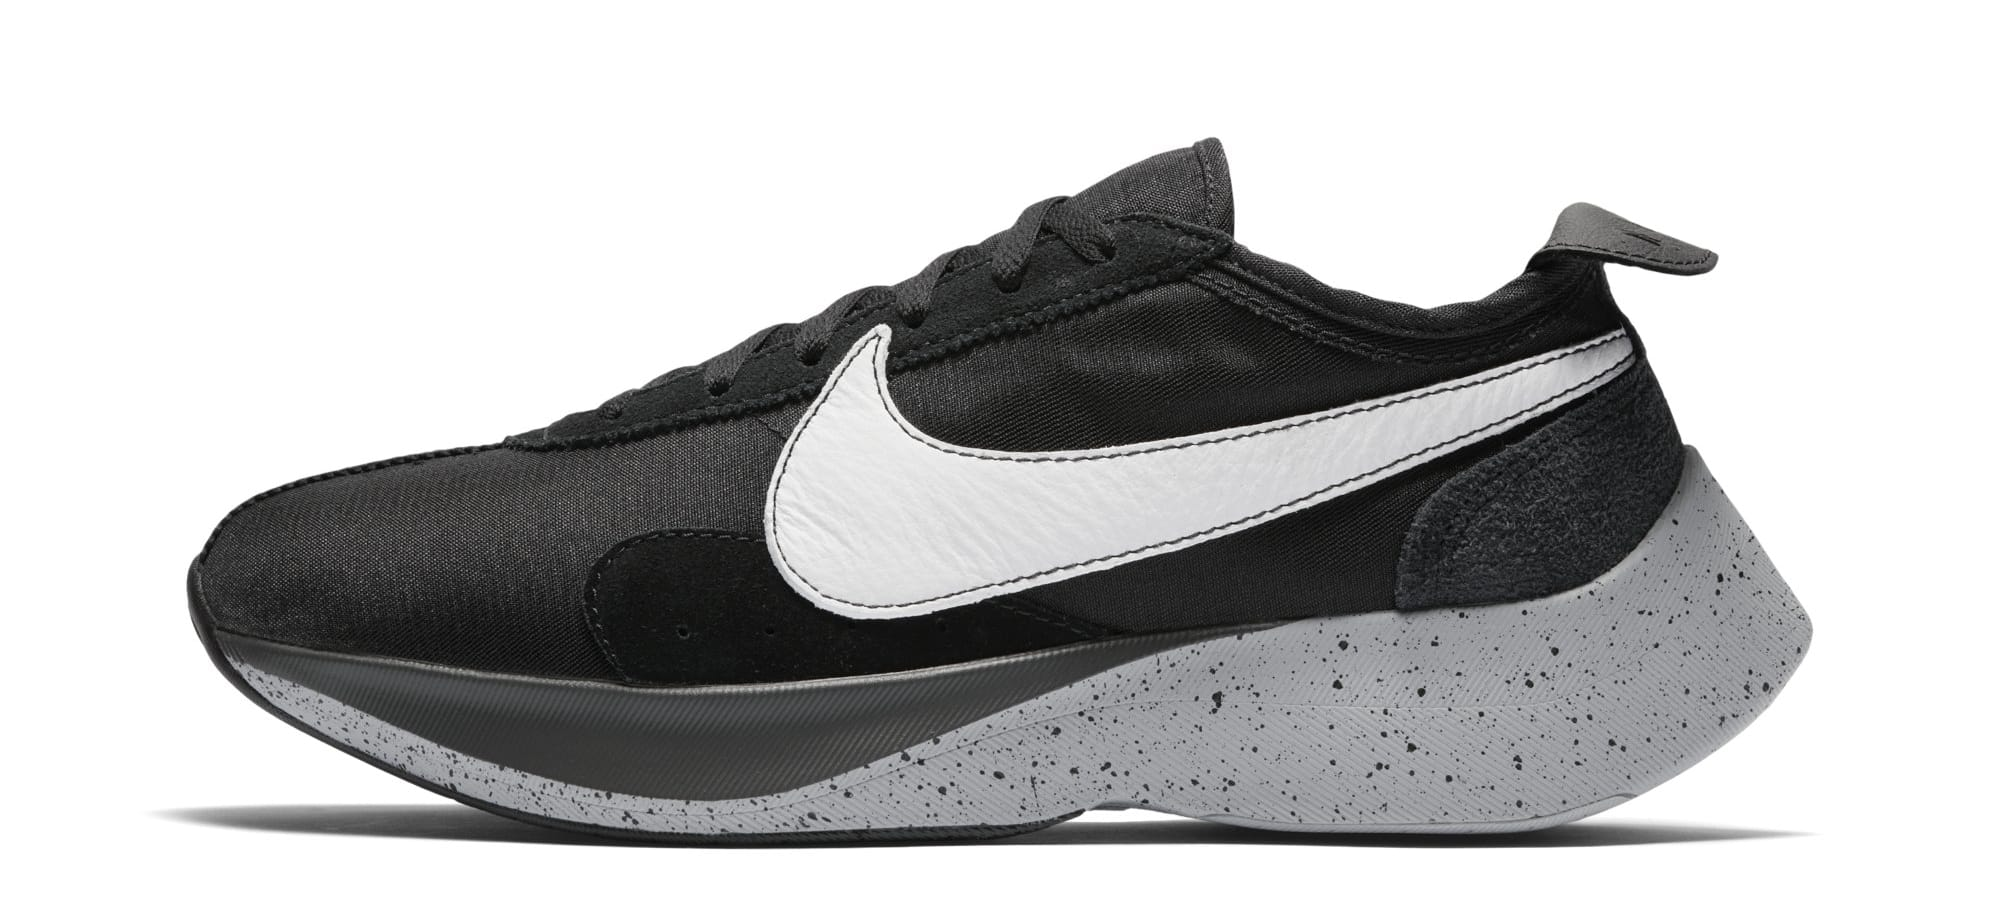 Nike Moon Racer 'Black/White/Wolf Grey' AQ4121-001 (Lateral)